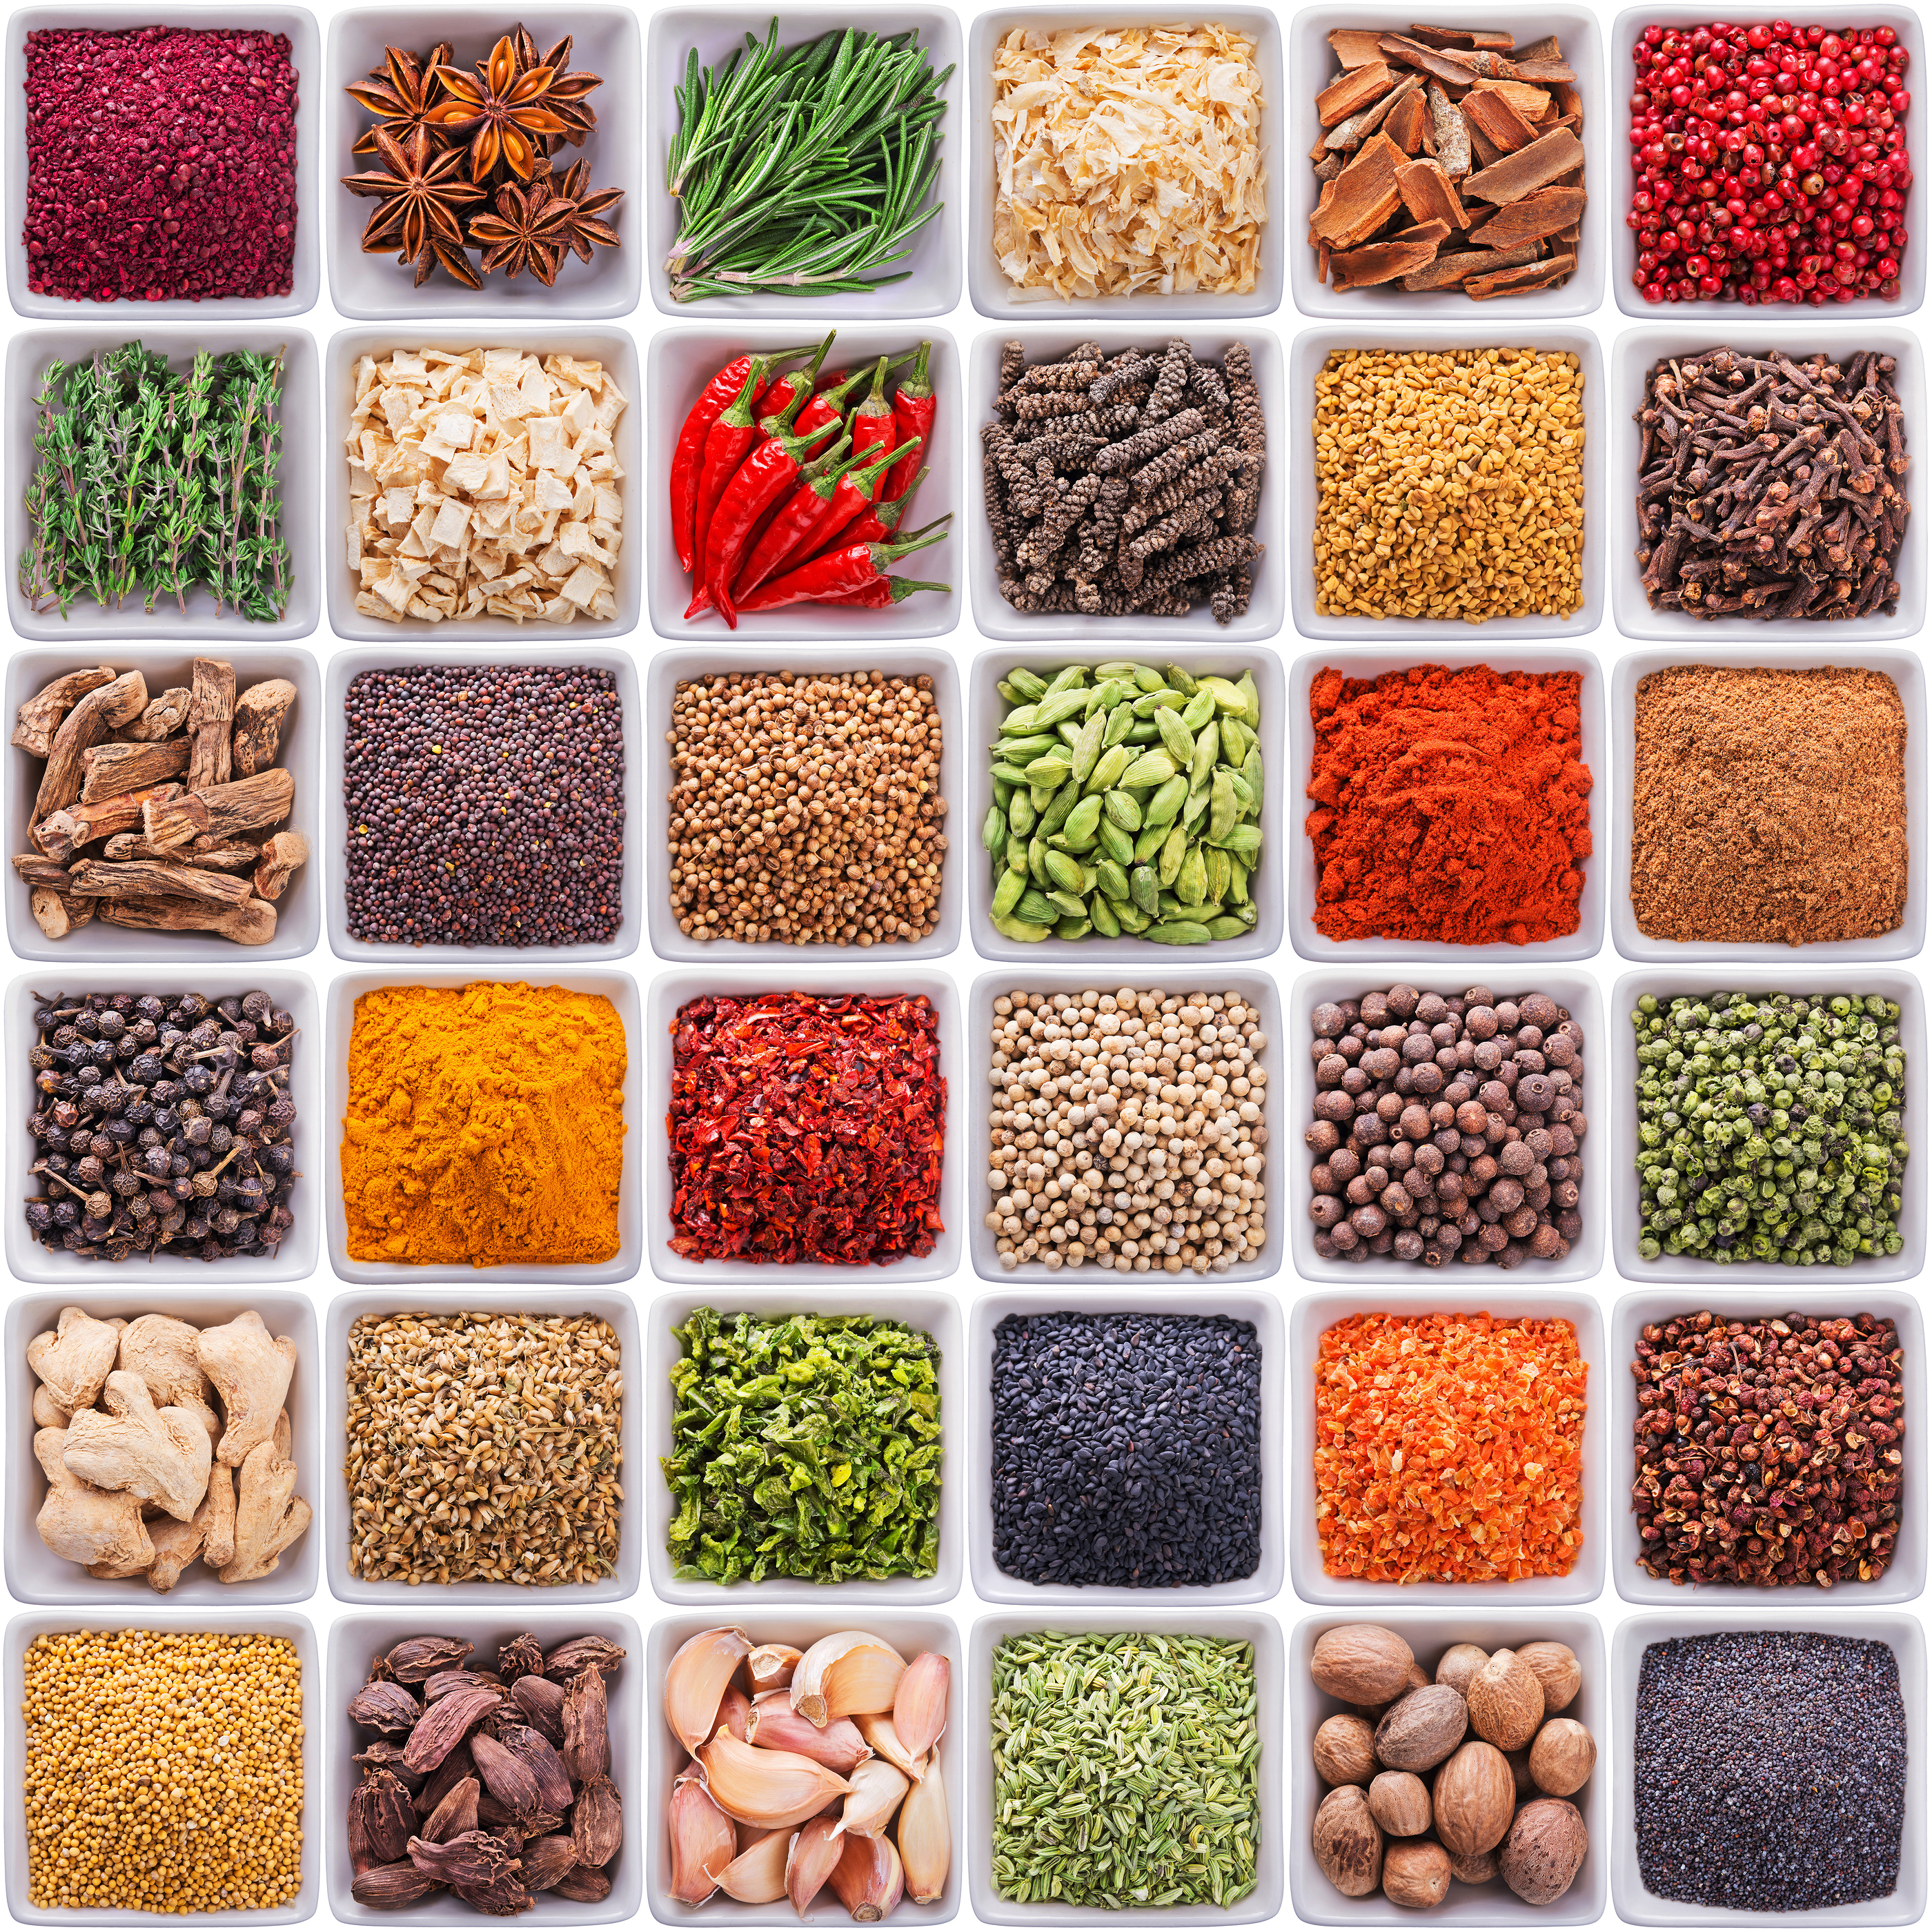 15 Herbs And Spices To Supercharge Your Brain (#4 Is The ...